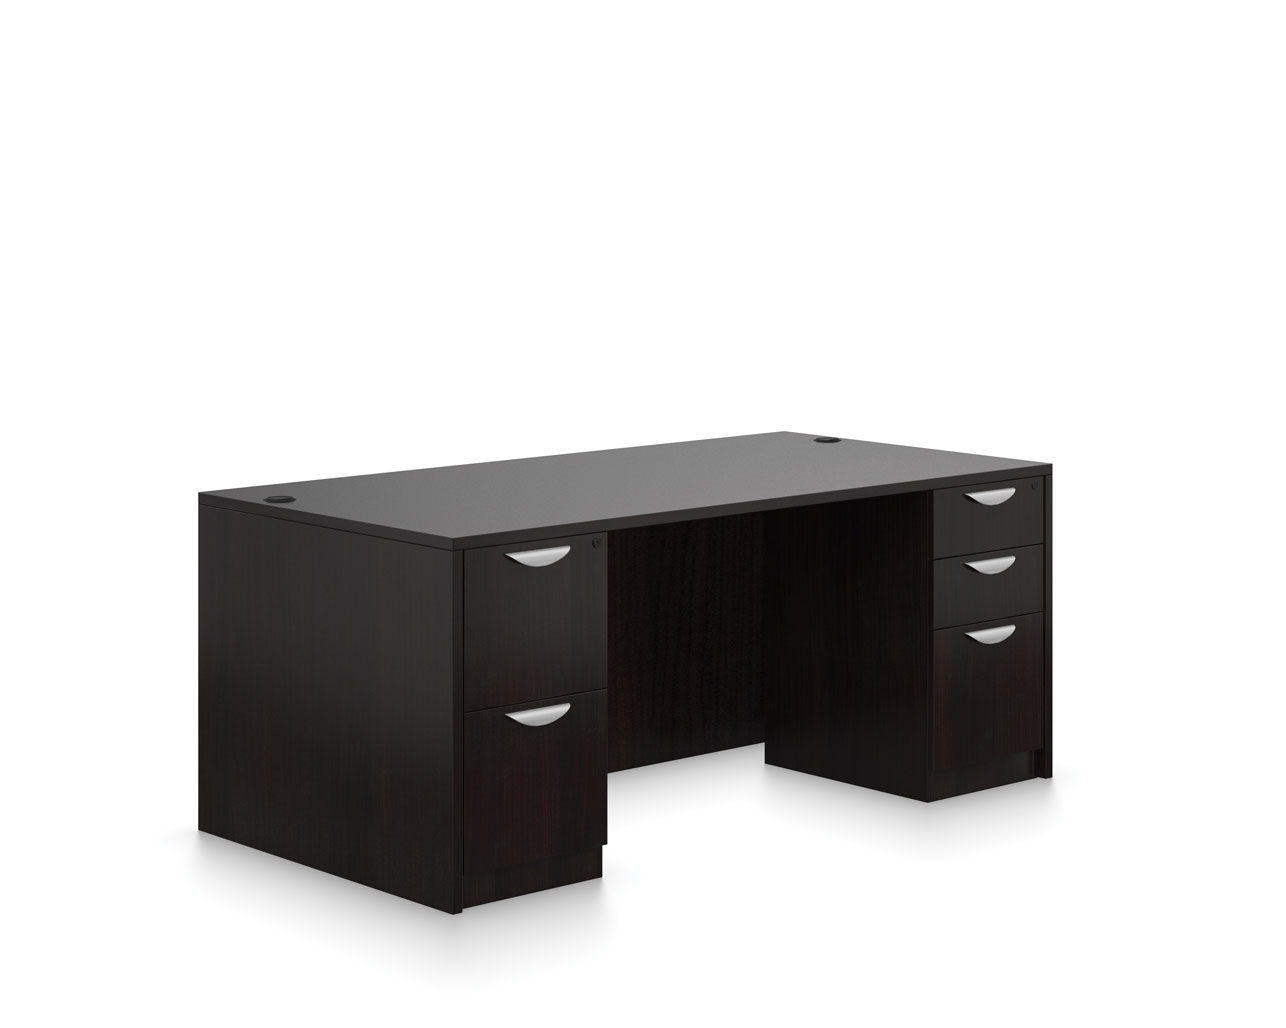 Affordable Office Furniture Desks from OTG - Shown in American Espresso woodgrain